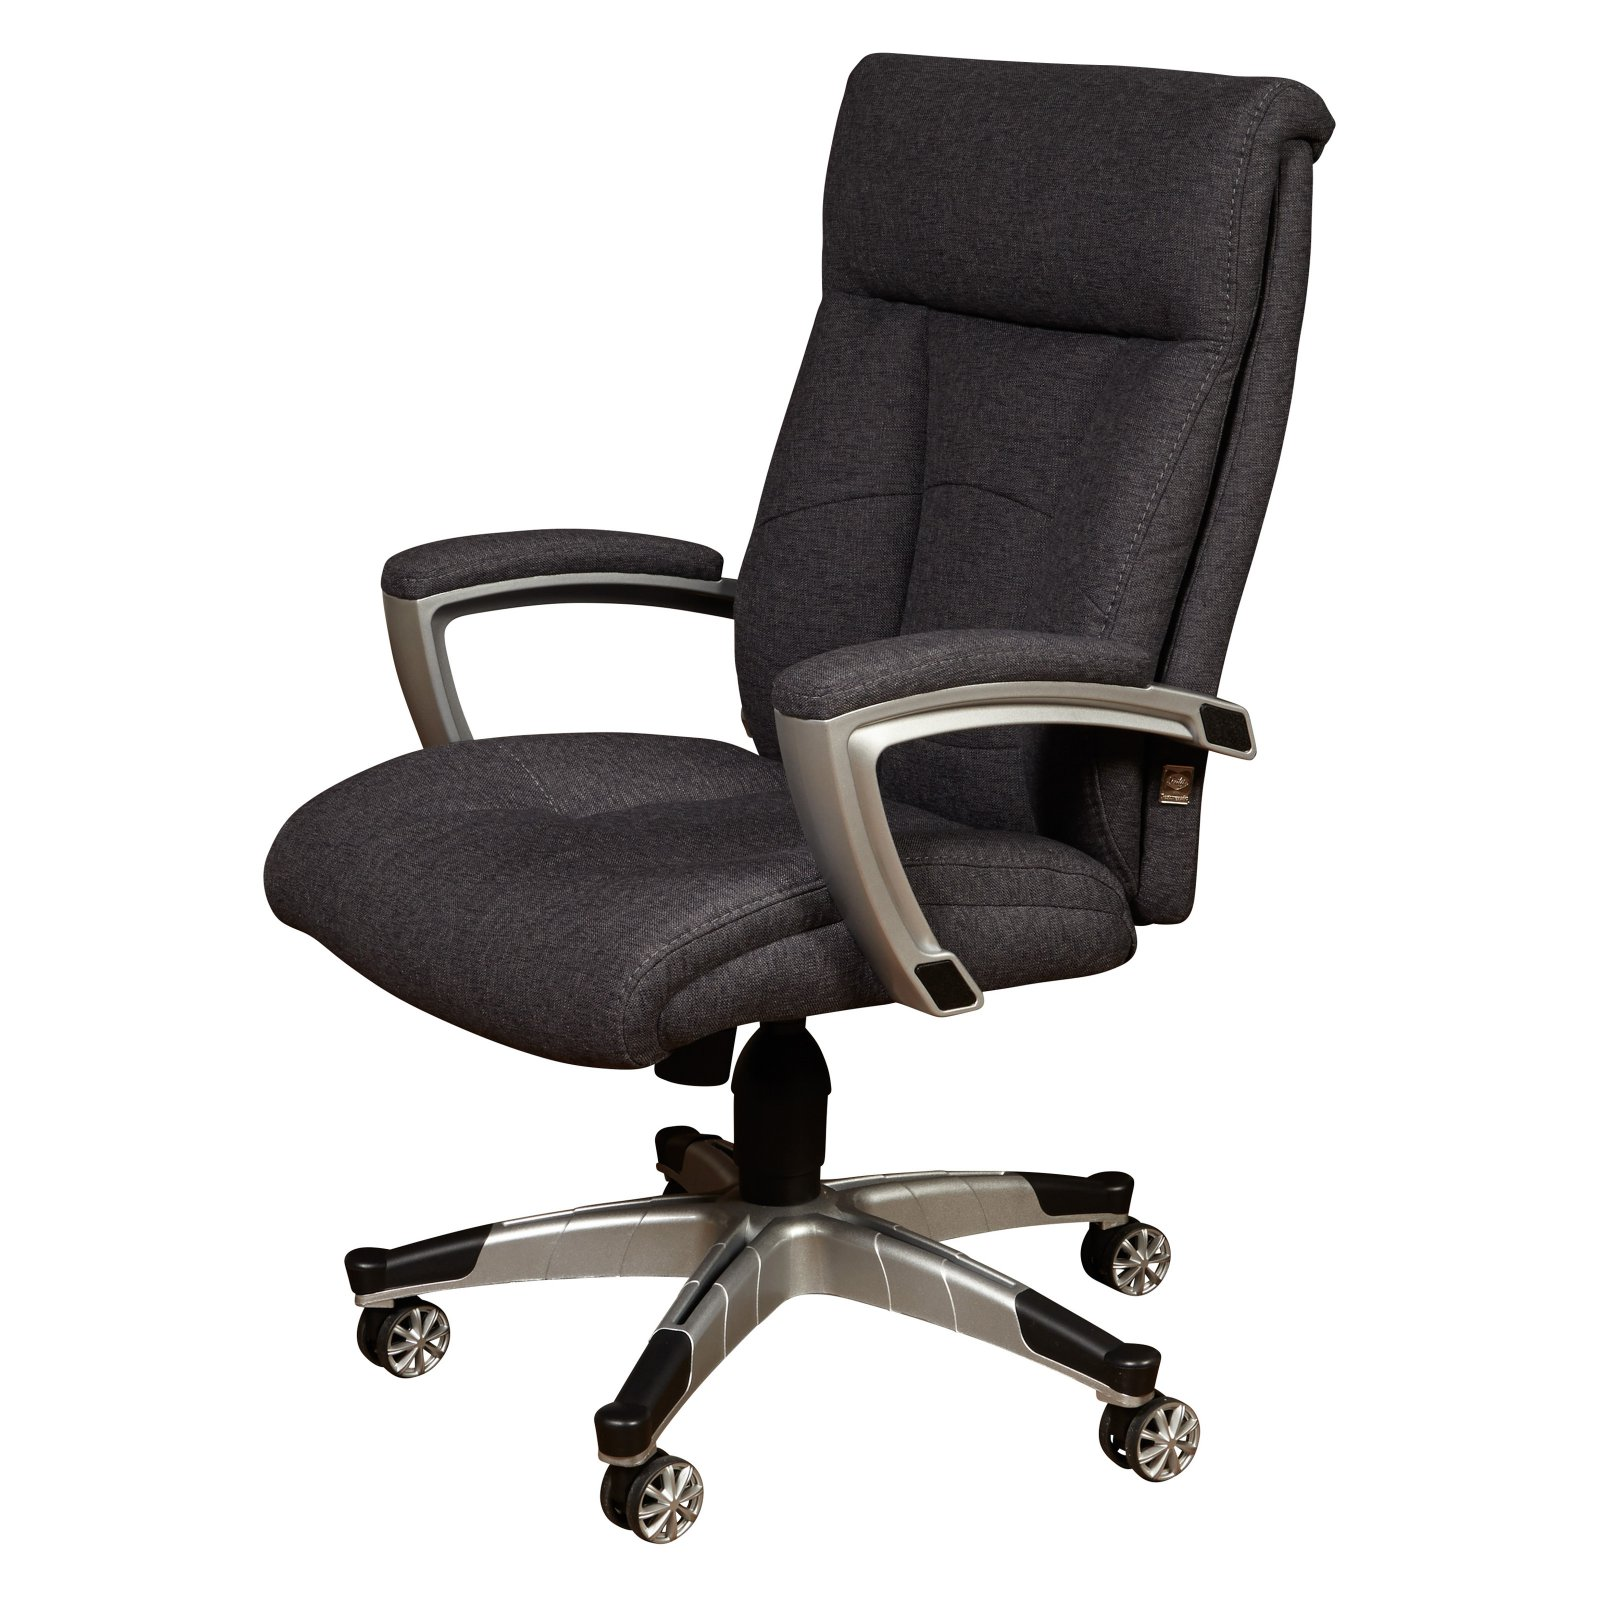 Merveilleux Sealy Posturepedic Office Chair Fabric Cool Foam Chair, Grey